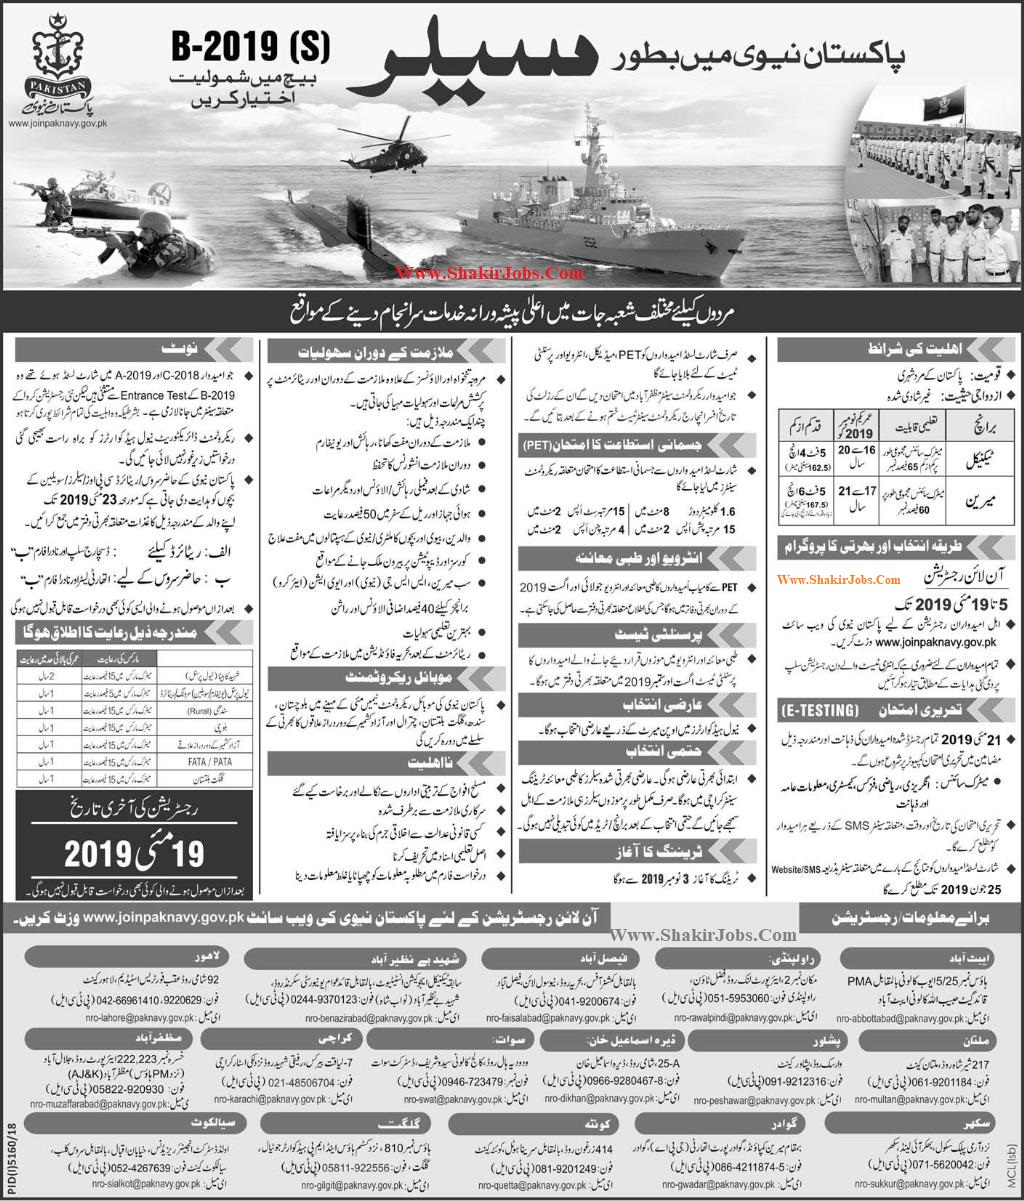 pak navy jobs,pakistan navy jobs,join pakistan navy,navy jobs,jobs in pakistan,join pak navy,pakistan navy,pakistan navy jobs 2019,pak navy,pak navy jobs 2018,navy jobs 2019,pakistan navy as sailor jobs 2019,navy jobs 2018,join pak navy 2019,join pak navy as civilian jobs,join pak navy civilian,pak navy jobs 2019,pak navy jobs 2019 || join pakistan navy as sailor 2019